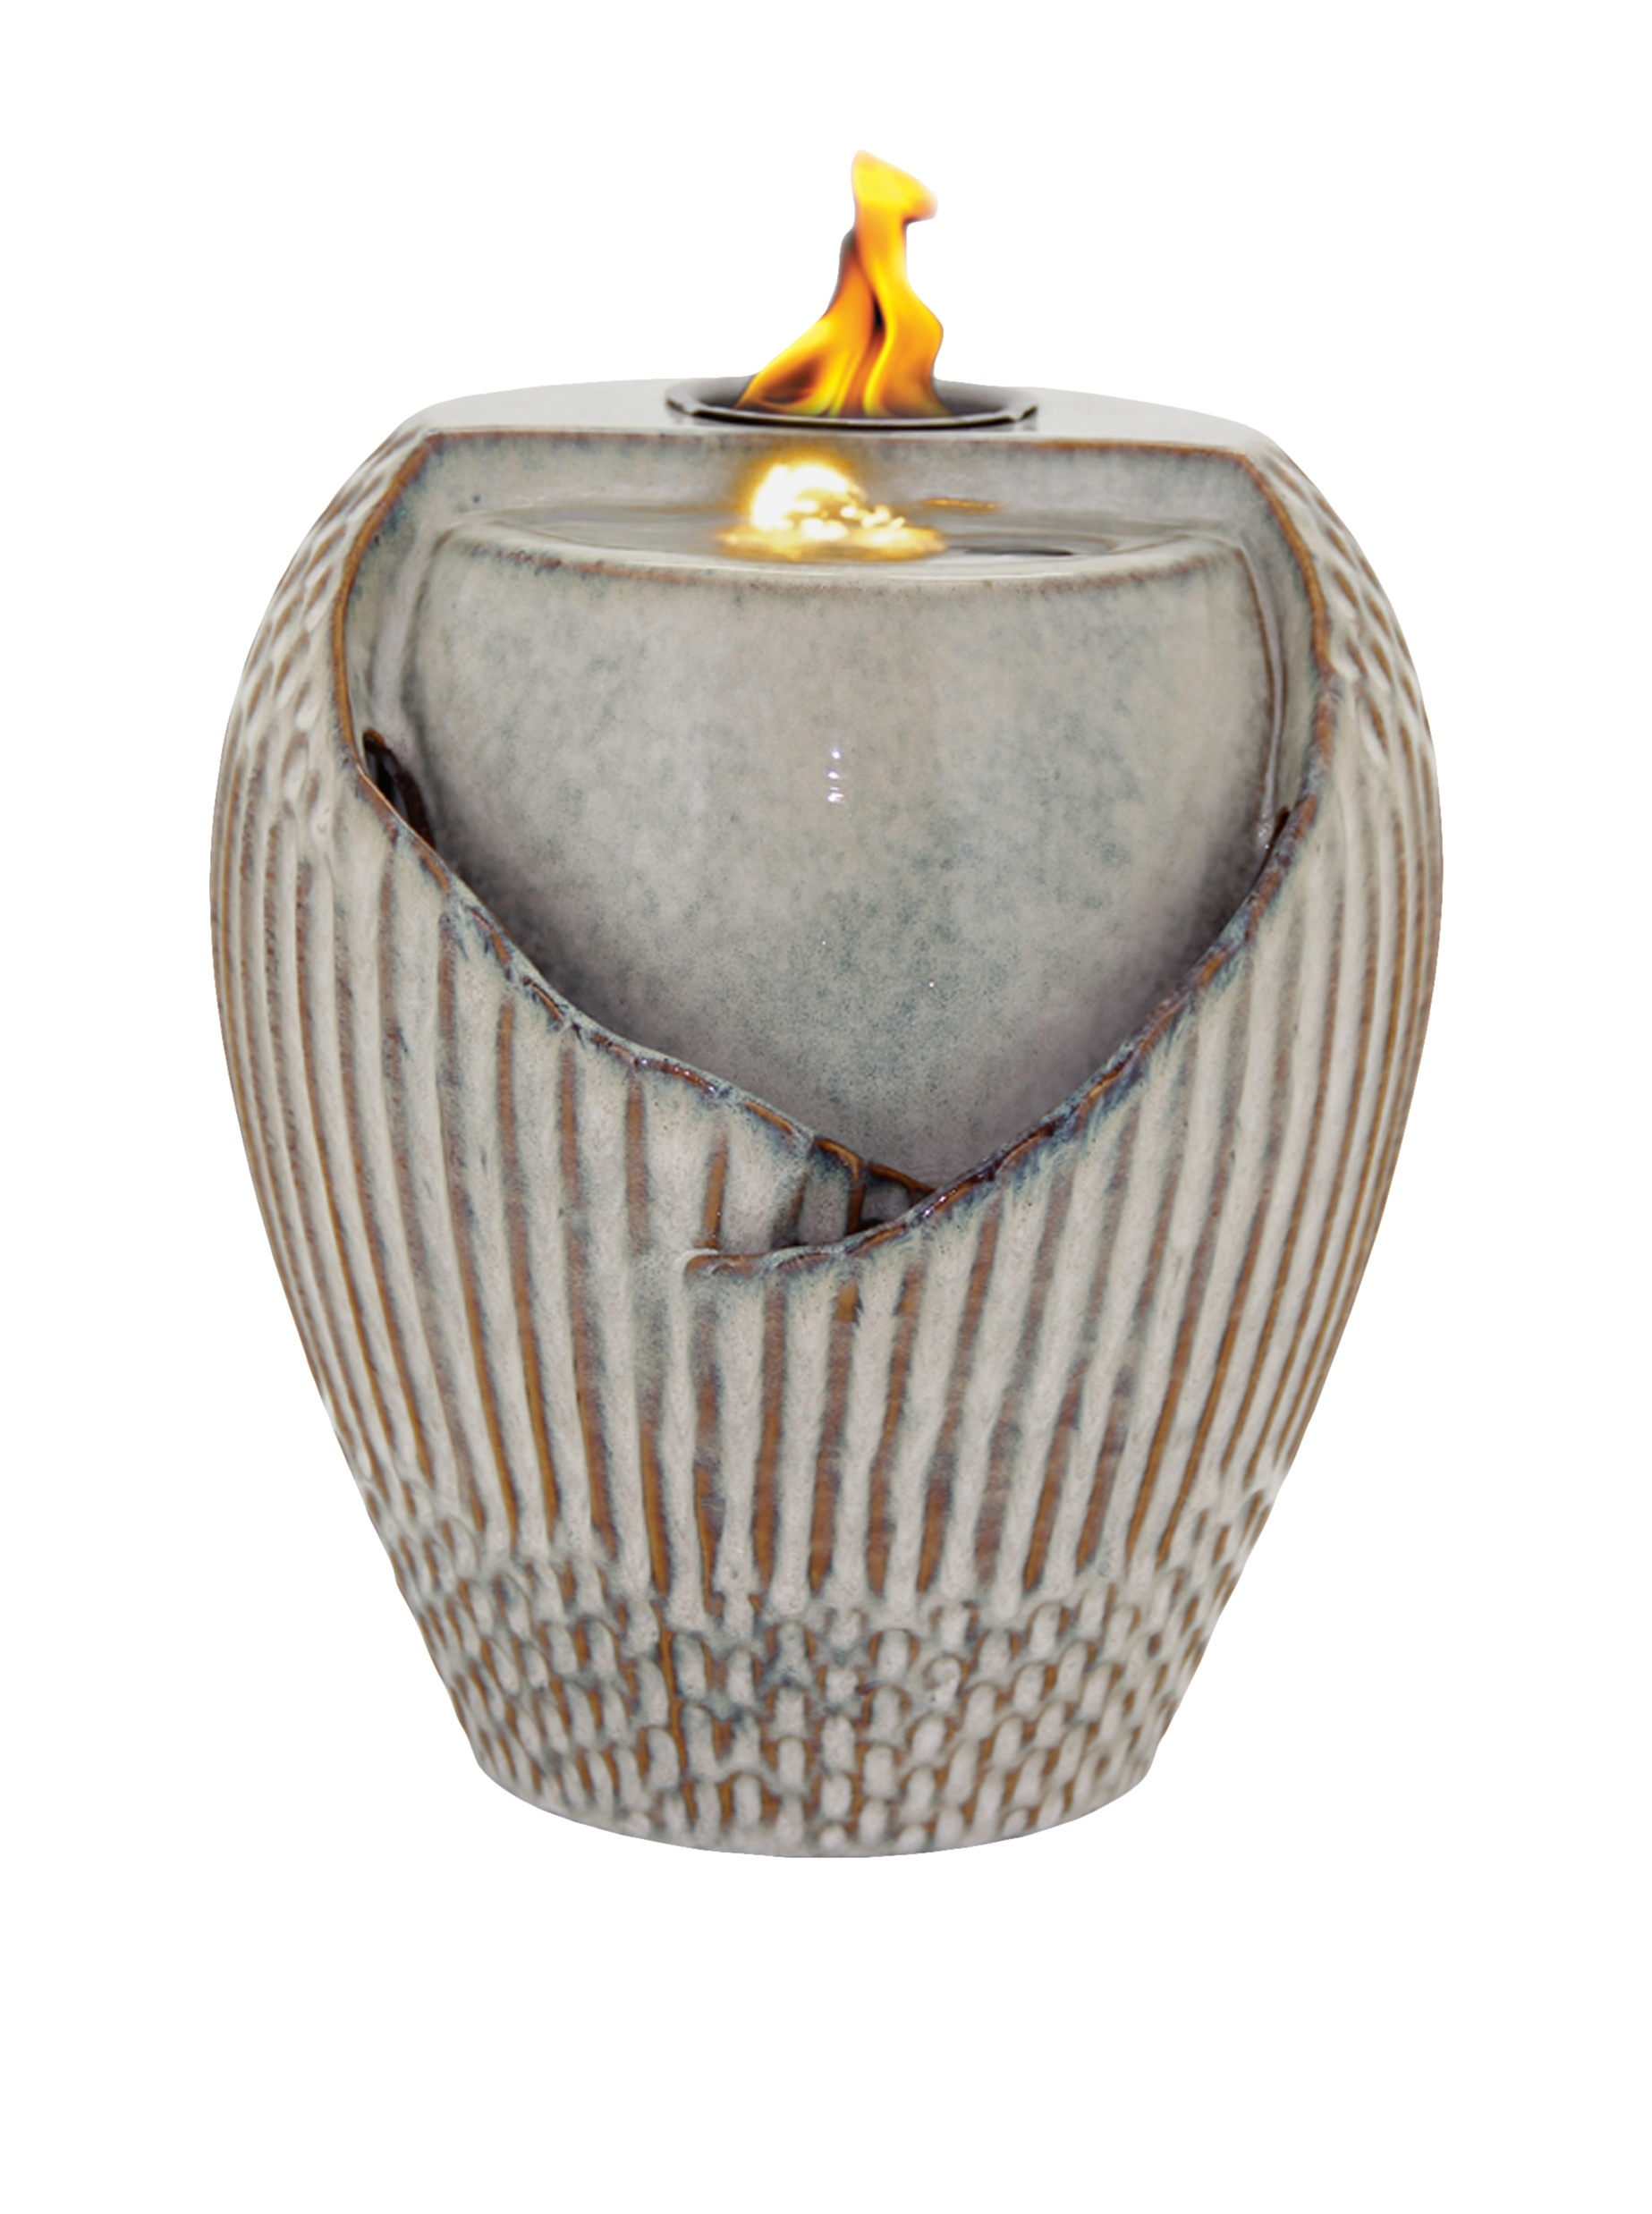 Pacific Decor Osaka LED Flame Fountain, 12-Inch, Sand by Pacific Décor